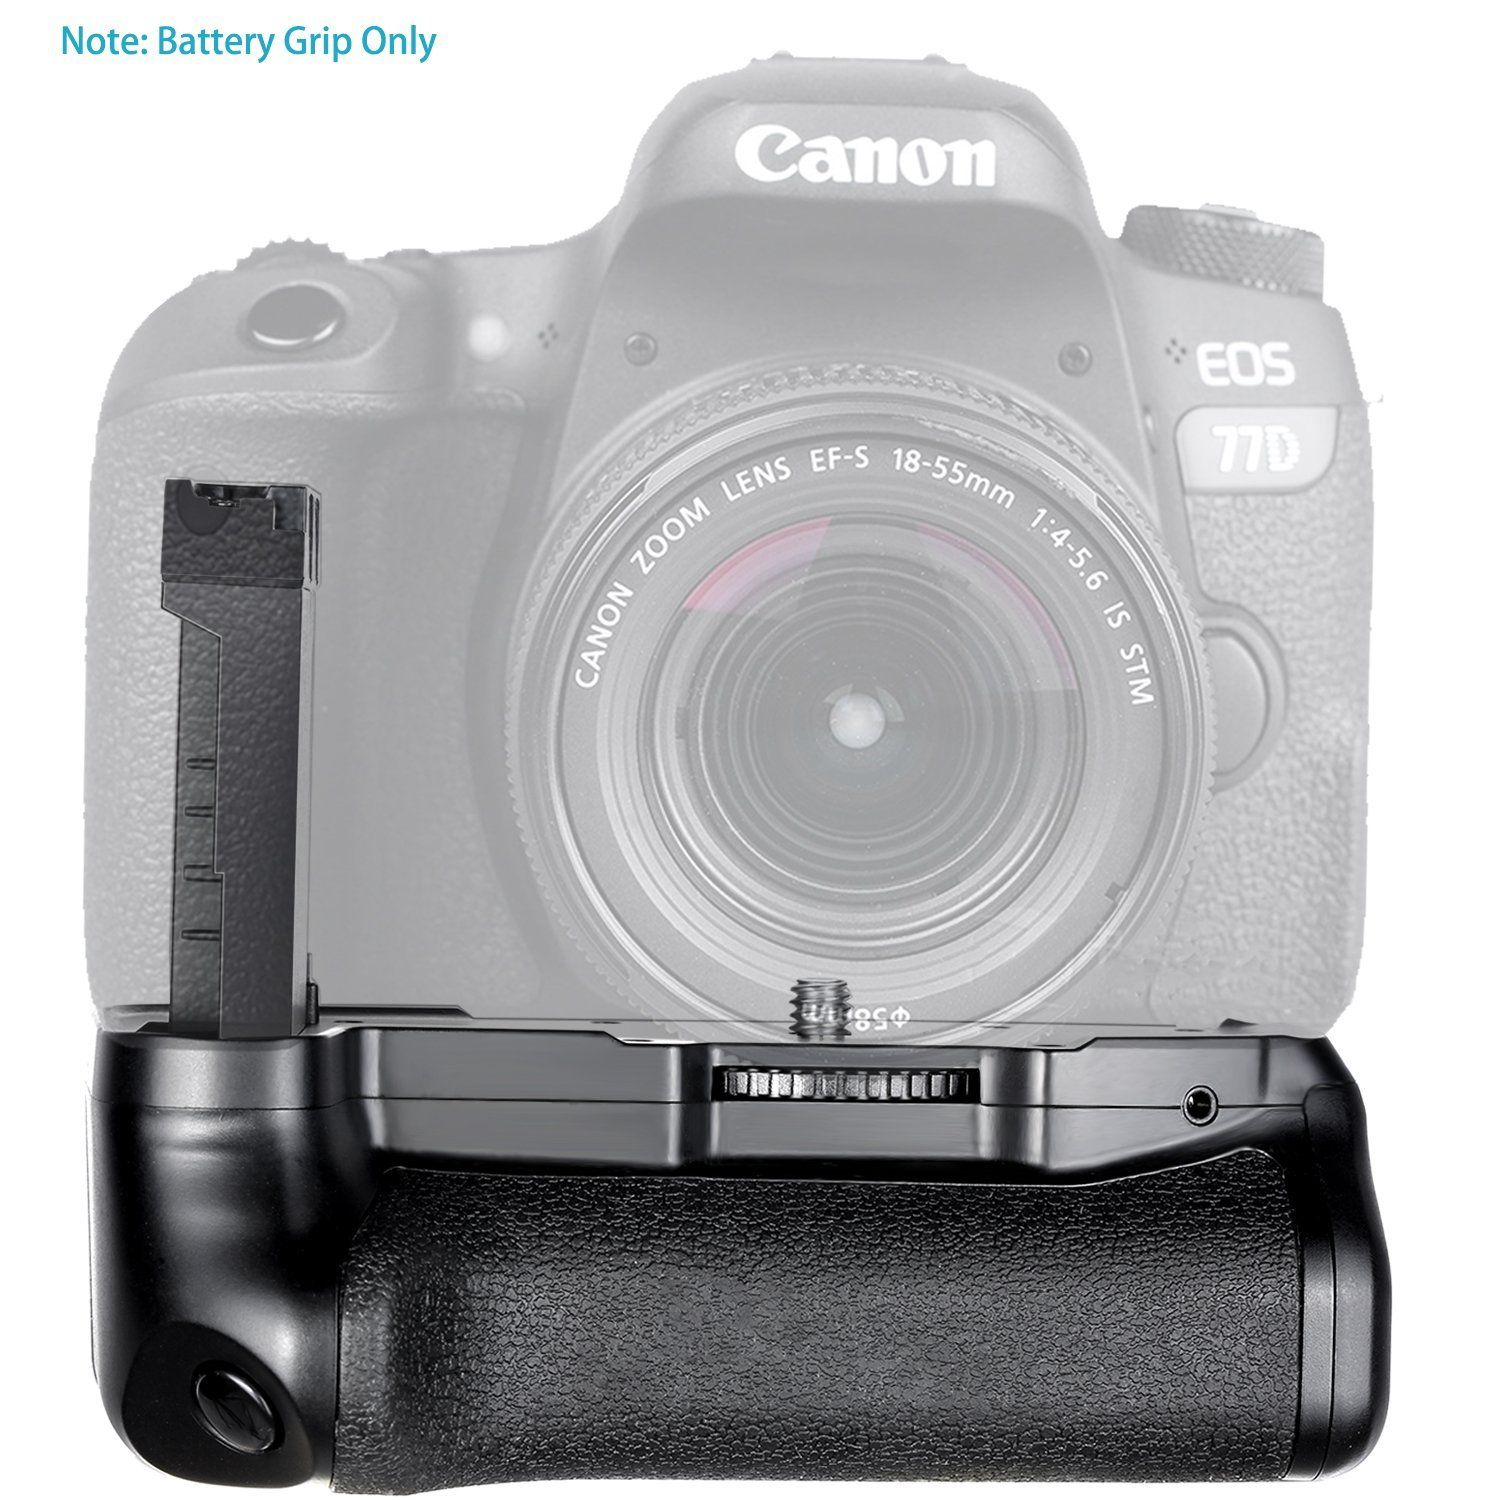 Battery Grip para Canon EOS 800D, Rebel T7i, 77D, Kiss X9i